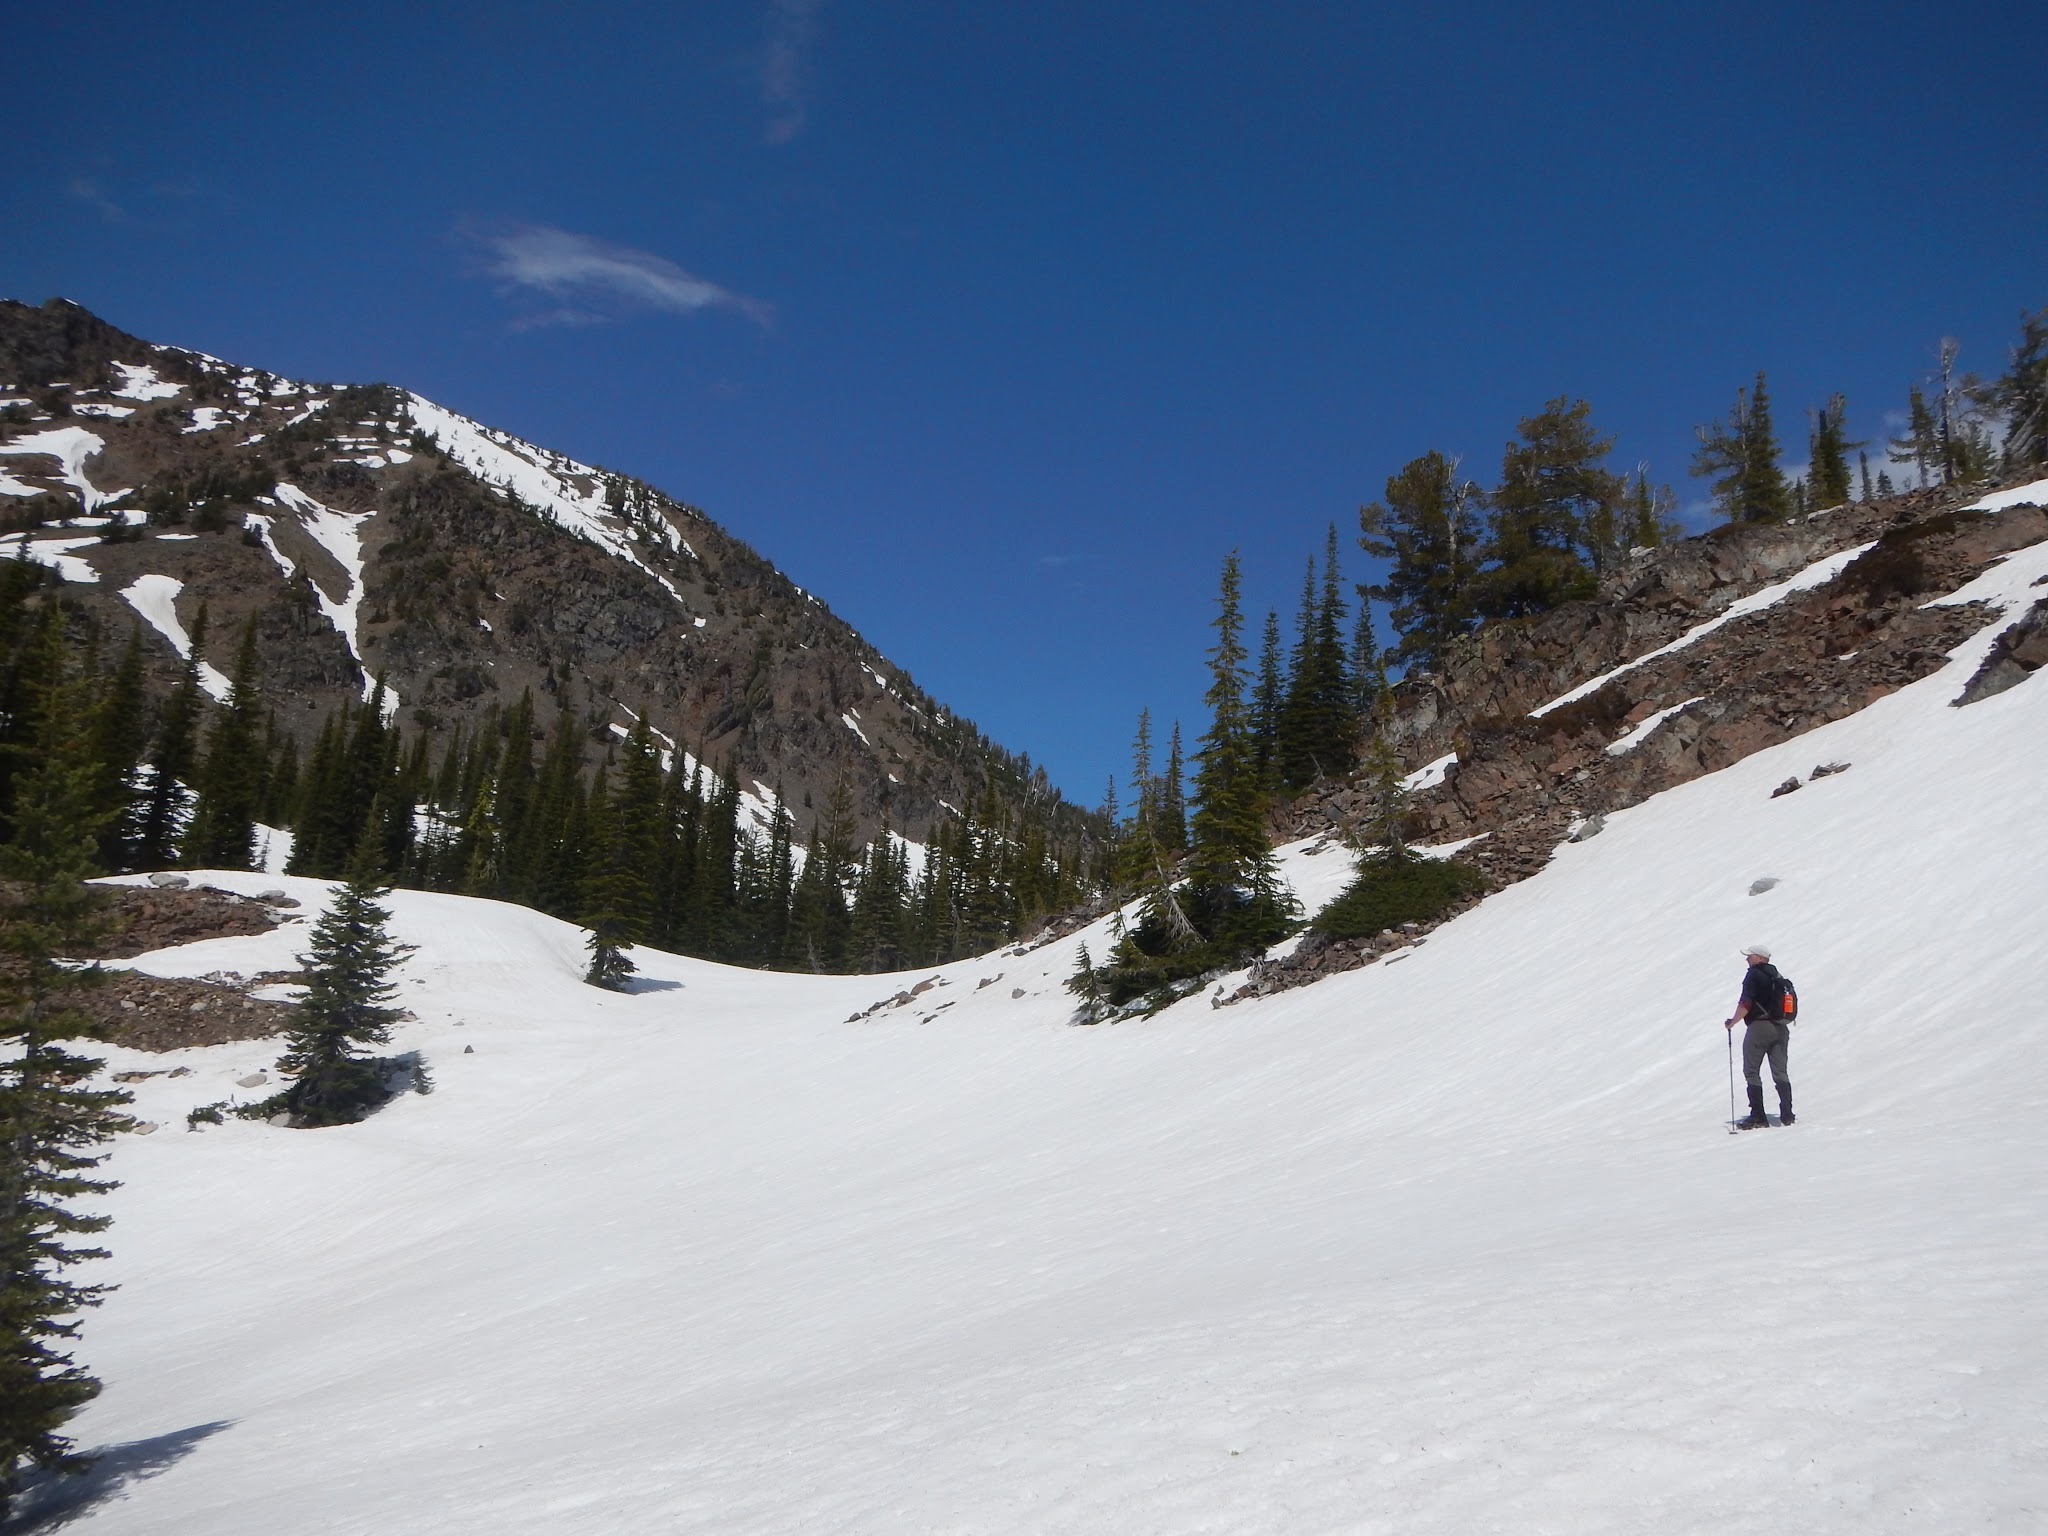 Photo: Aaron crosses the first big snowfield